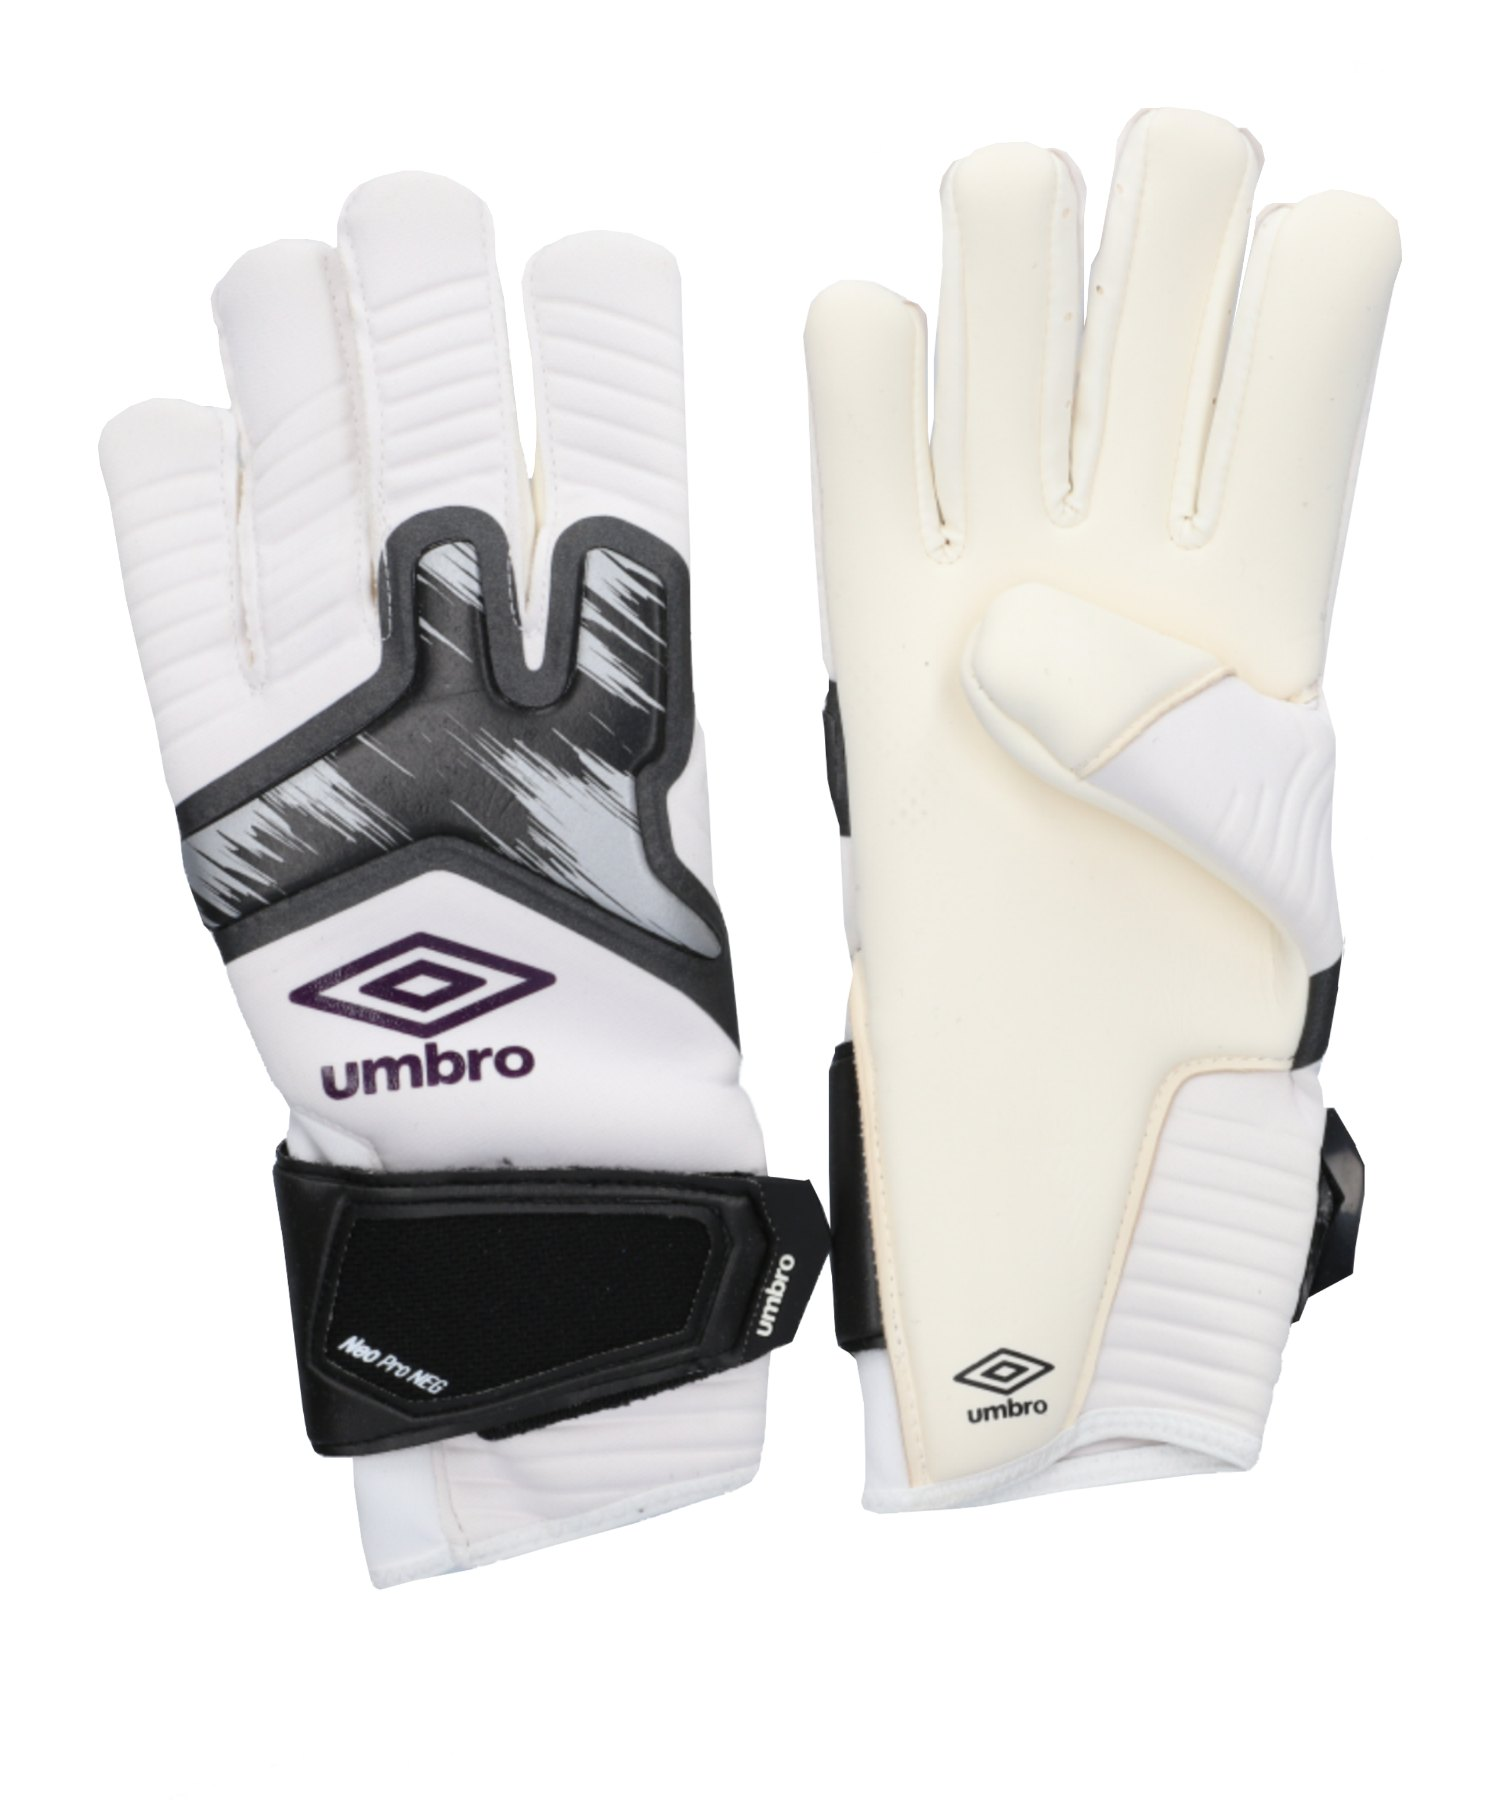 Umbro Neo Pro NC TW-Handschuh Weiss FHPQ - Weiss